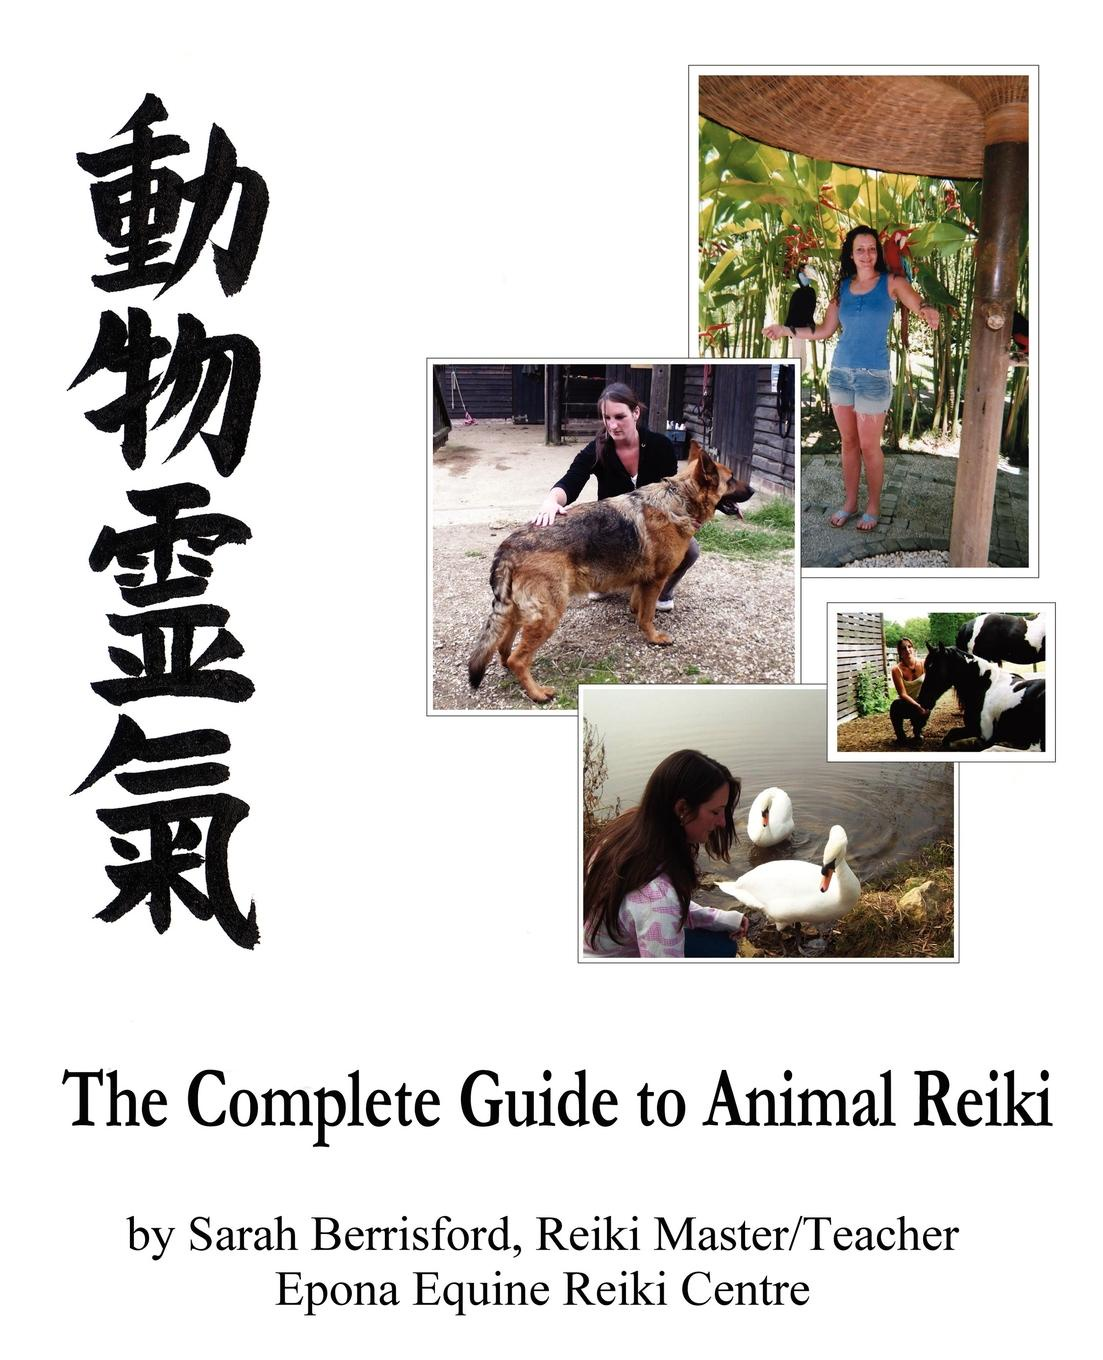 Sarah Berrisford The Complete Guide to Animal Reiki. animal healing using Reiki for animals, Reiki for dogs and cats, equine Reiki for horses essential reiki